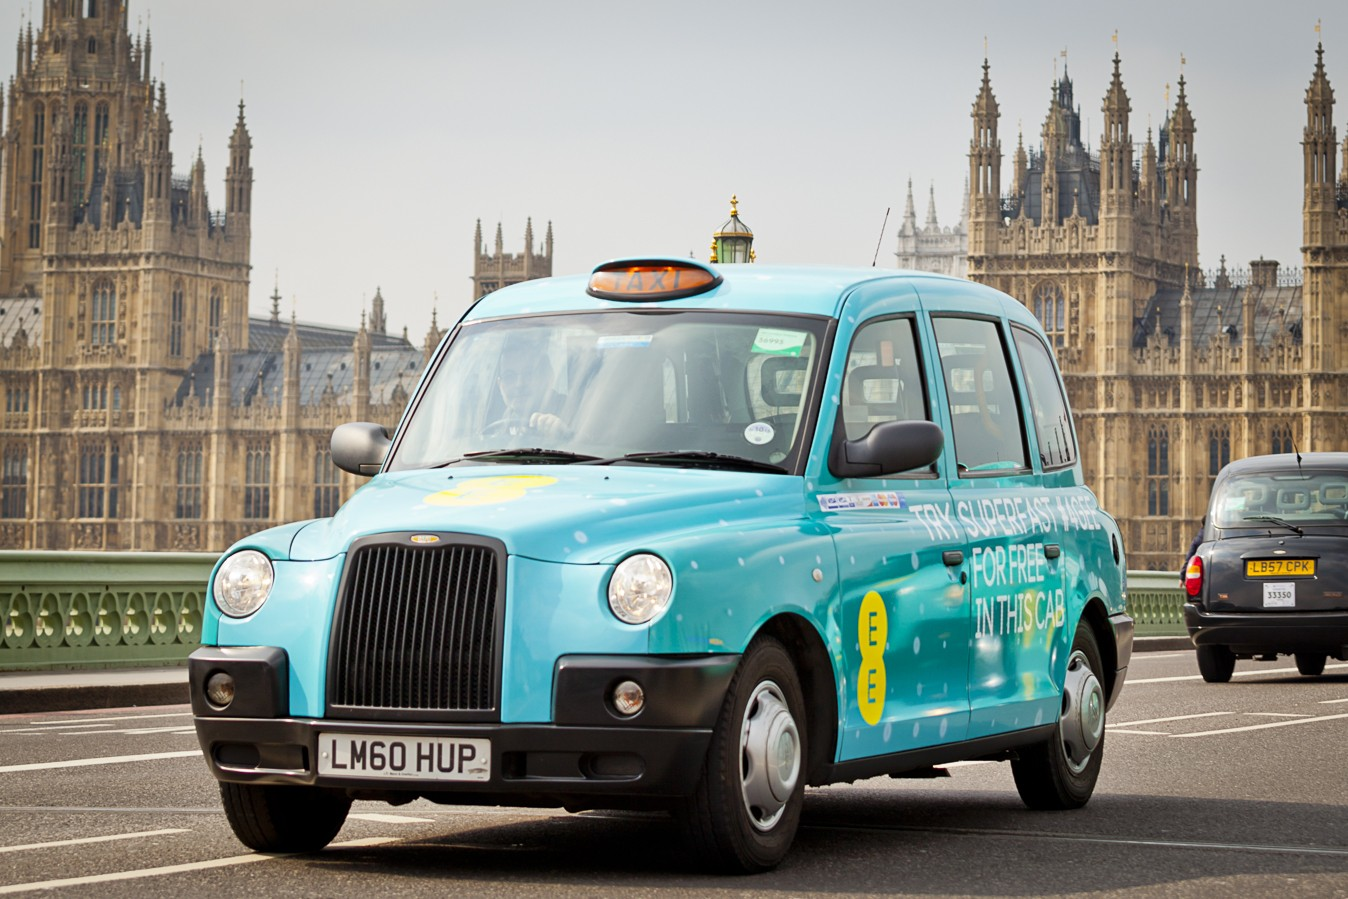 4GEE Taxi - Westminster Bridge